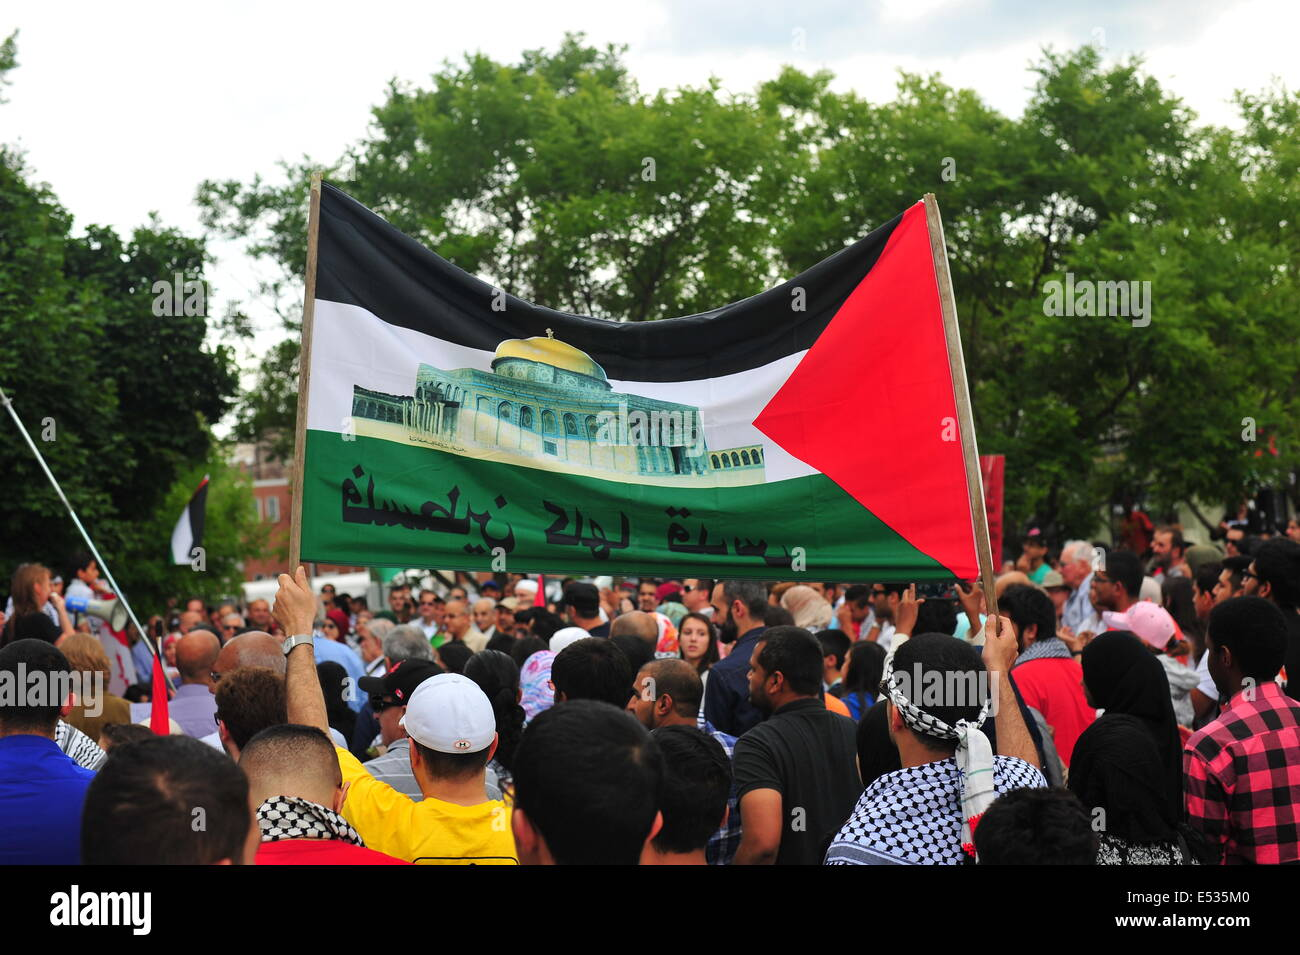 In London, Ontario over 150 people attend a rally in solidarity with Palestinians in Gaza during Israels offensive - Stock Image